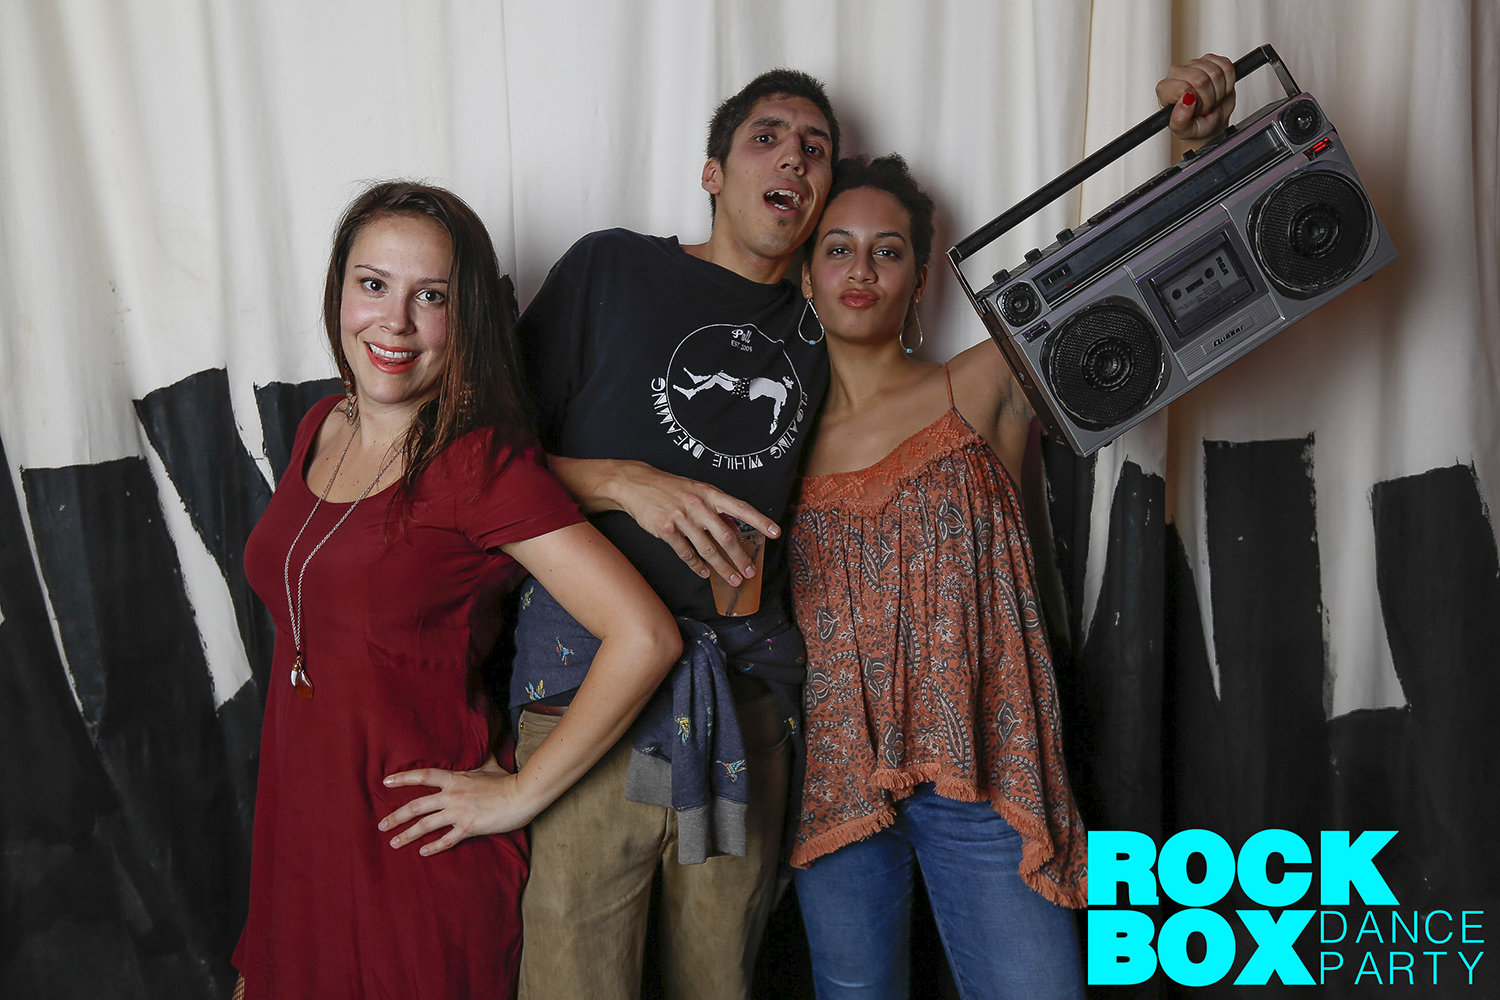 Rock box feb 2015-0168.jpg